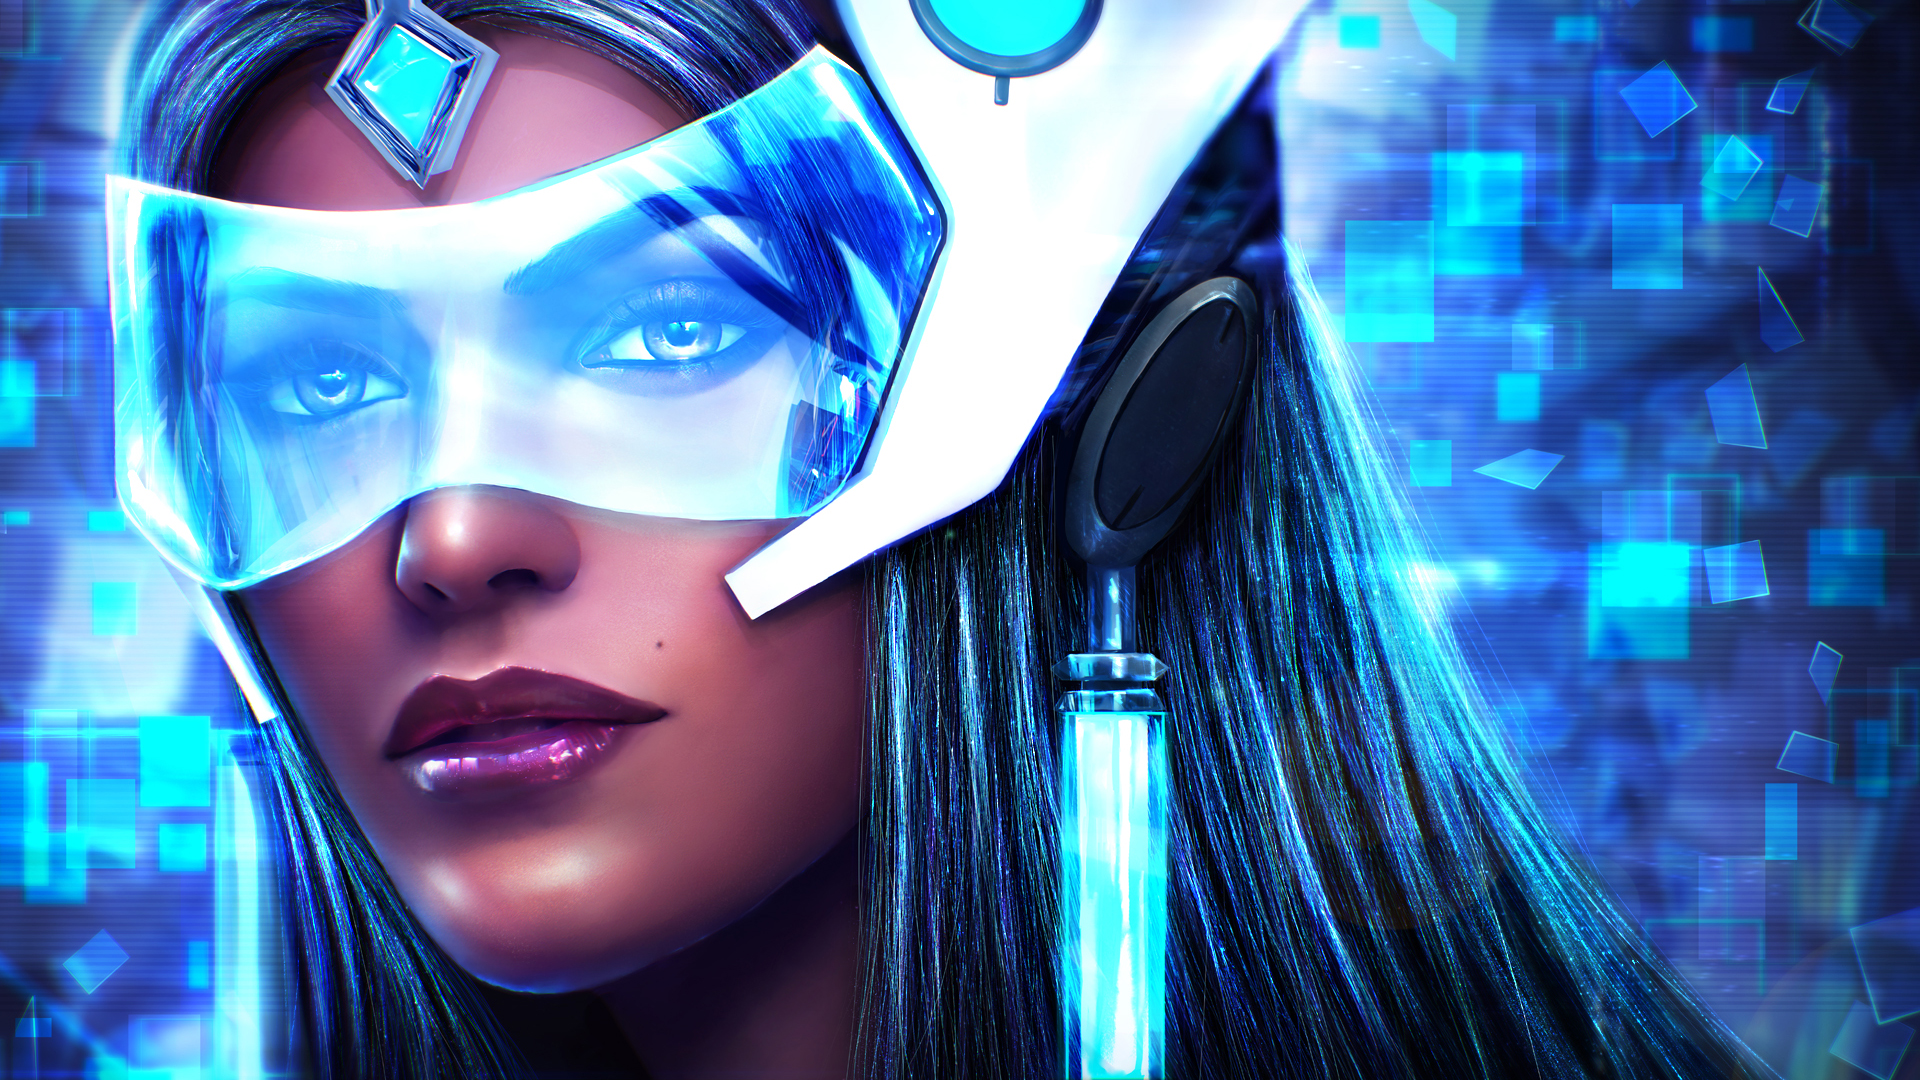 Symmetra in Overwatch Artwork91448240 - Symmetra in Overwatch Artwork - Symmetra, Overwatch, Frostpunk, Artwork